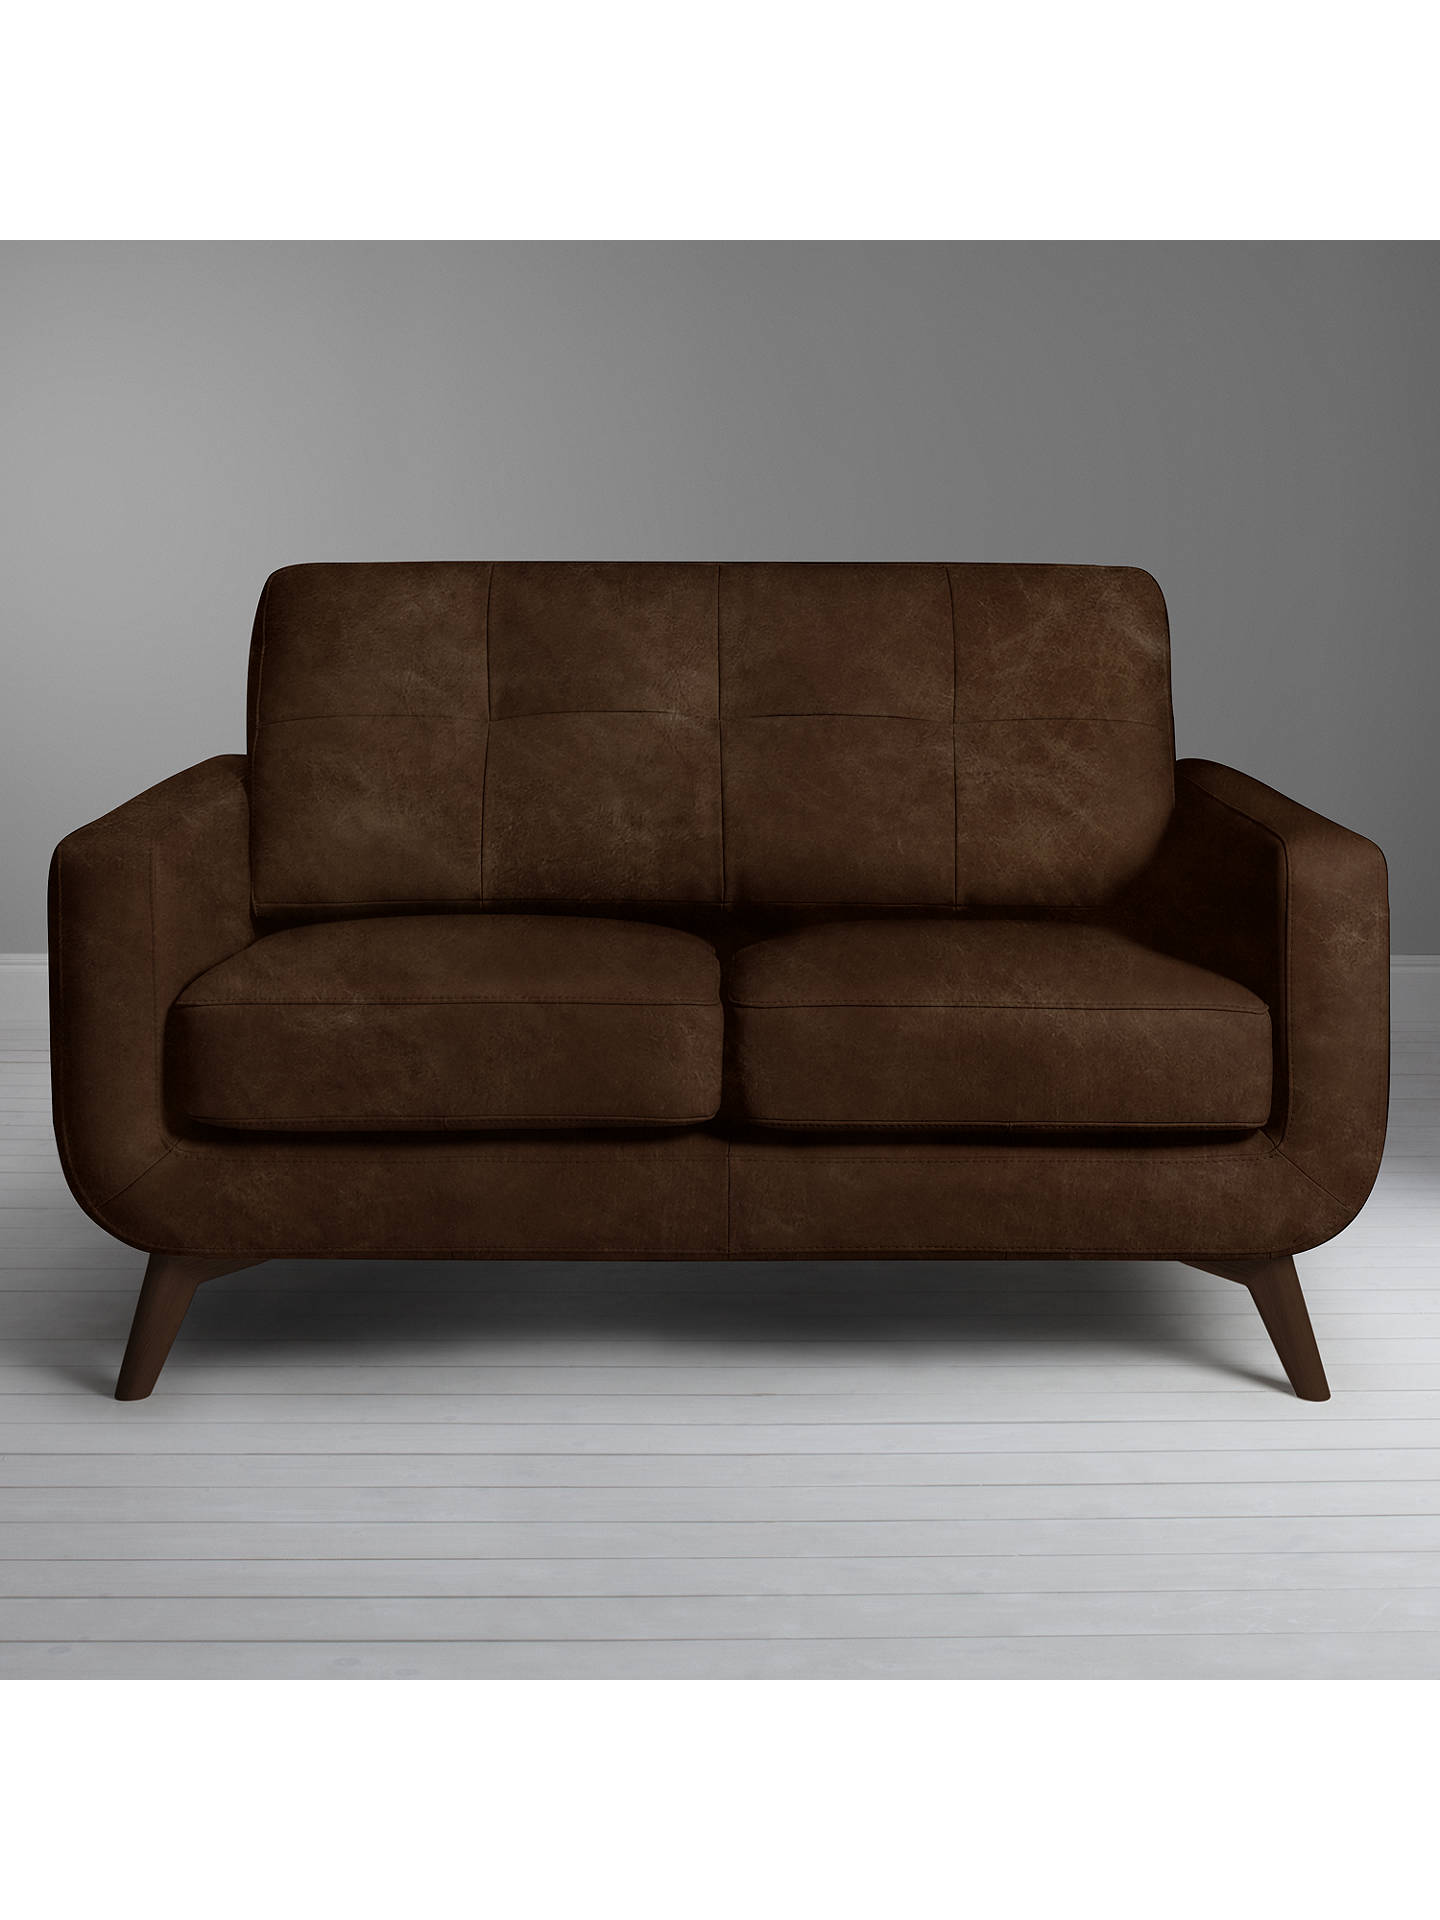 Buy John Lewis & Partners Barbican Small 2 Seater Leather Sofa, Dark Leg, Winchester Anthracite Online at johnlewis.com